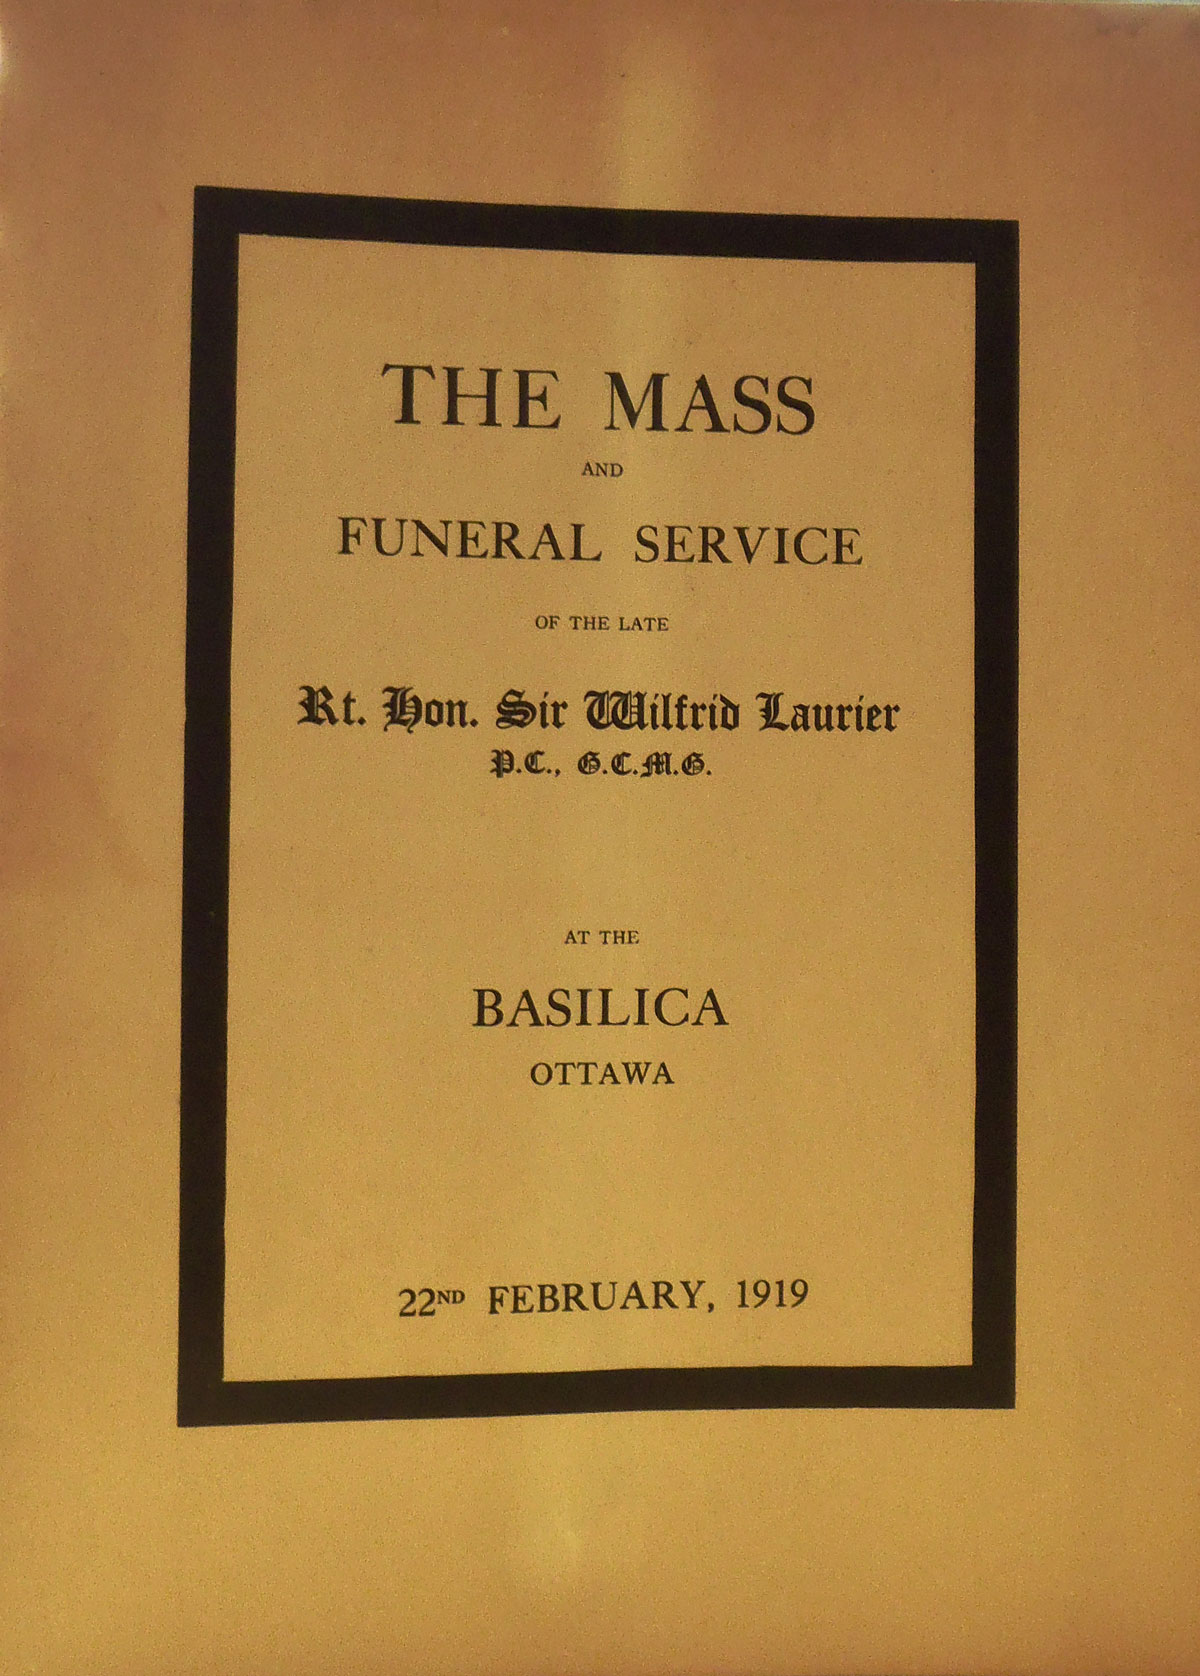 Program for Laurier's funeral mass at the Basilica in Ottawa, February 22, 1919. Canadian Museum of History, Rare Books, FC 551 L3 M37 1919. Photo: Xavier Gélinas, PB140740